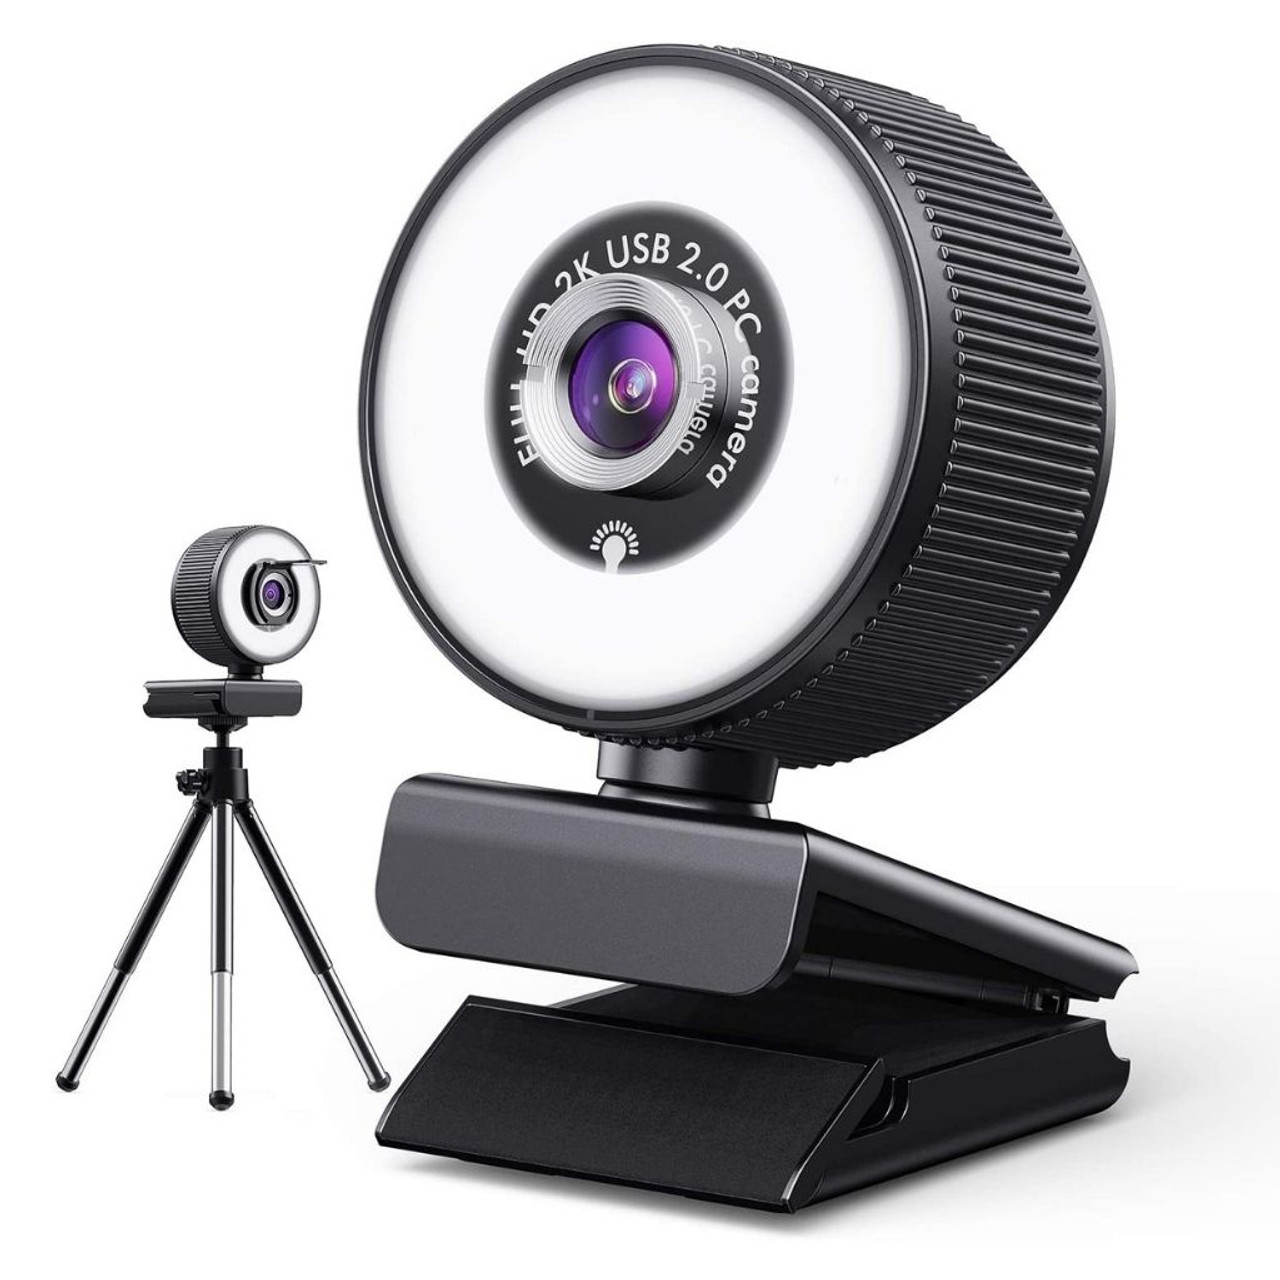 2K HD Ring Light Webcam with Built-in Microphone + Tripod $18.99 (37% OFF)